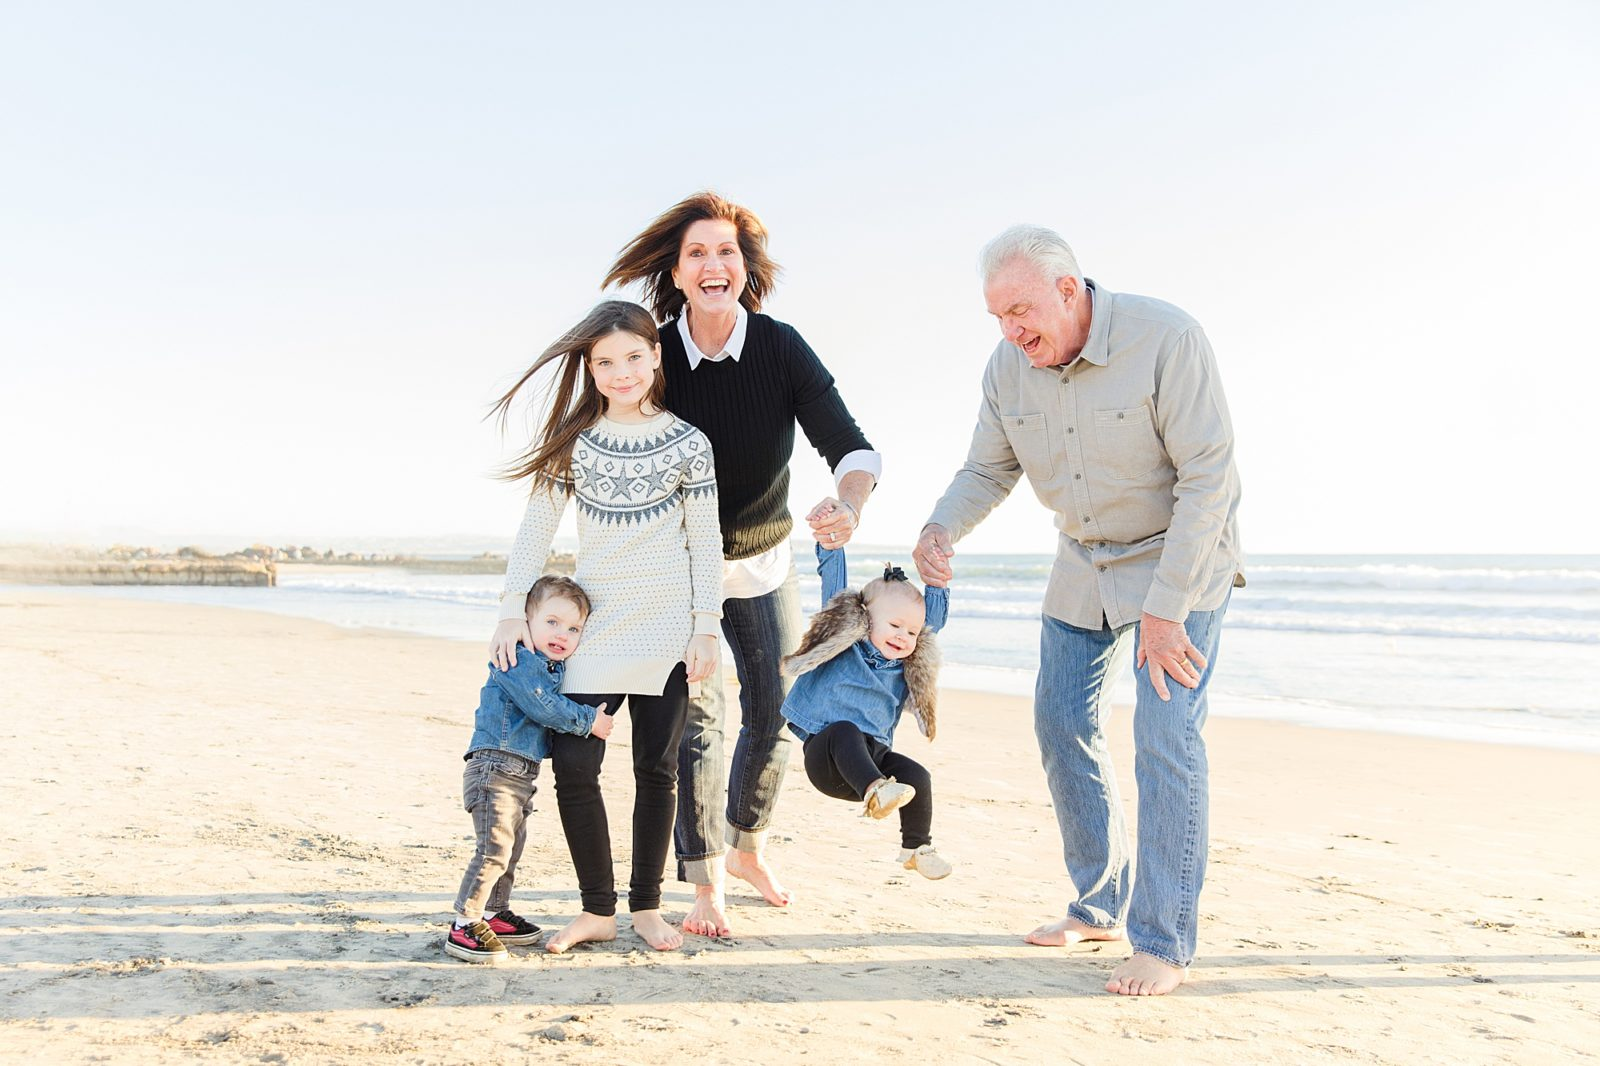 Family Photography San Diego | San Diego Photography